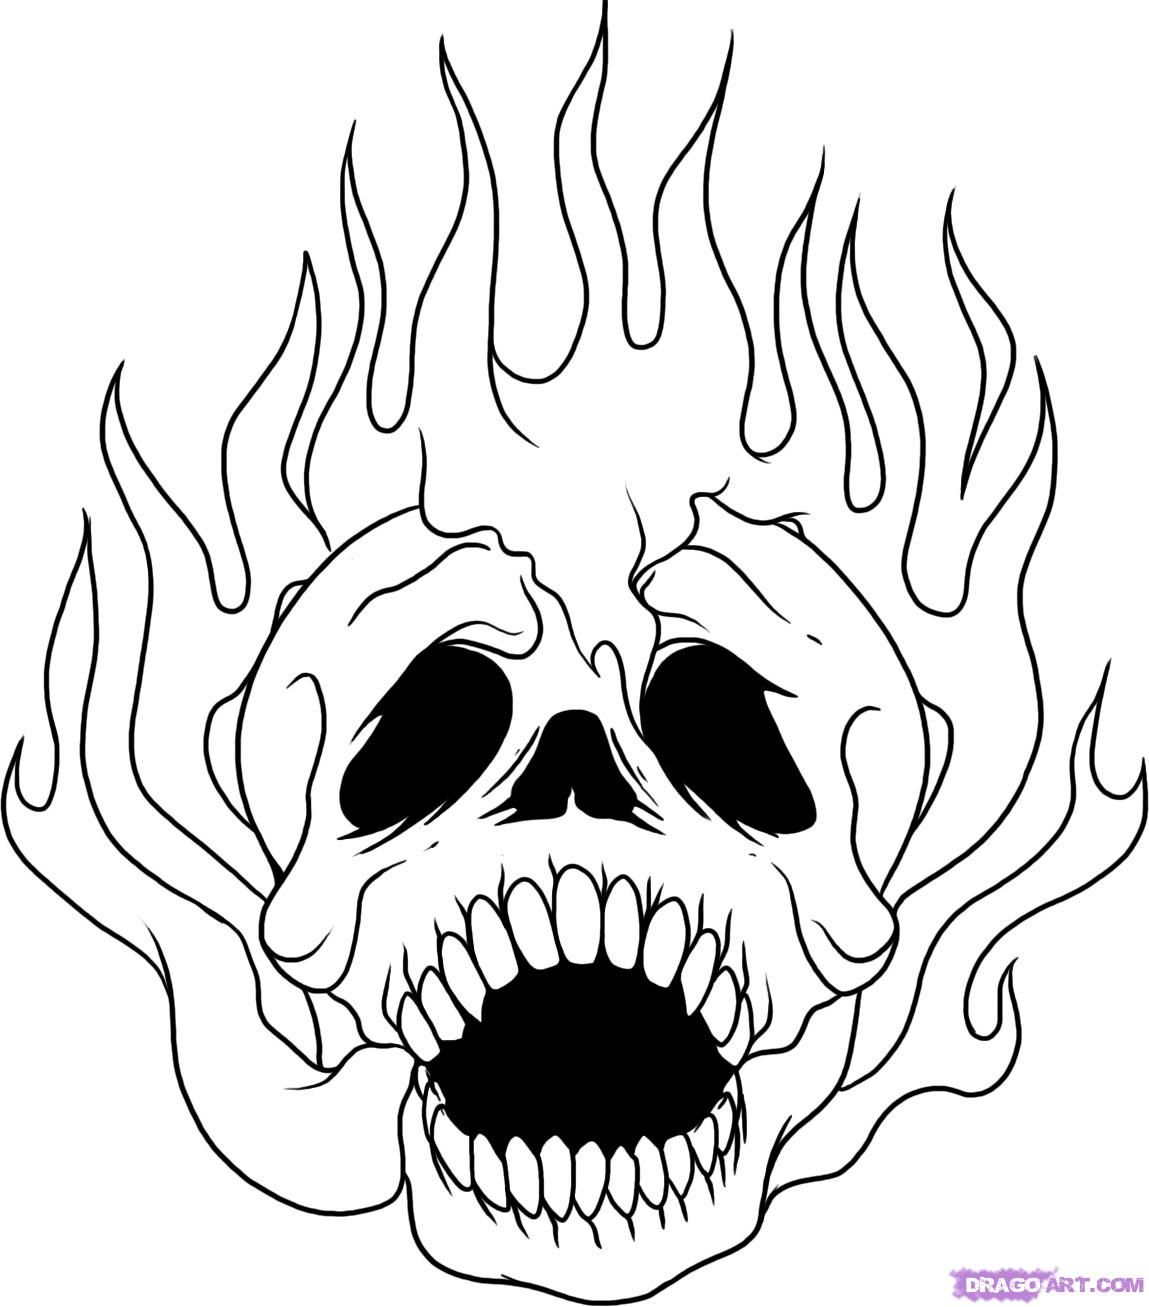 Coloring pages graffiti - 15 Pics Of Flaming Skulls Coloring Pages Graffiti Flaming Skull